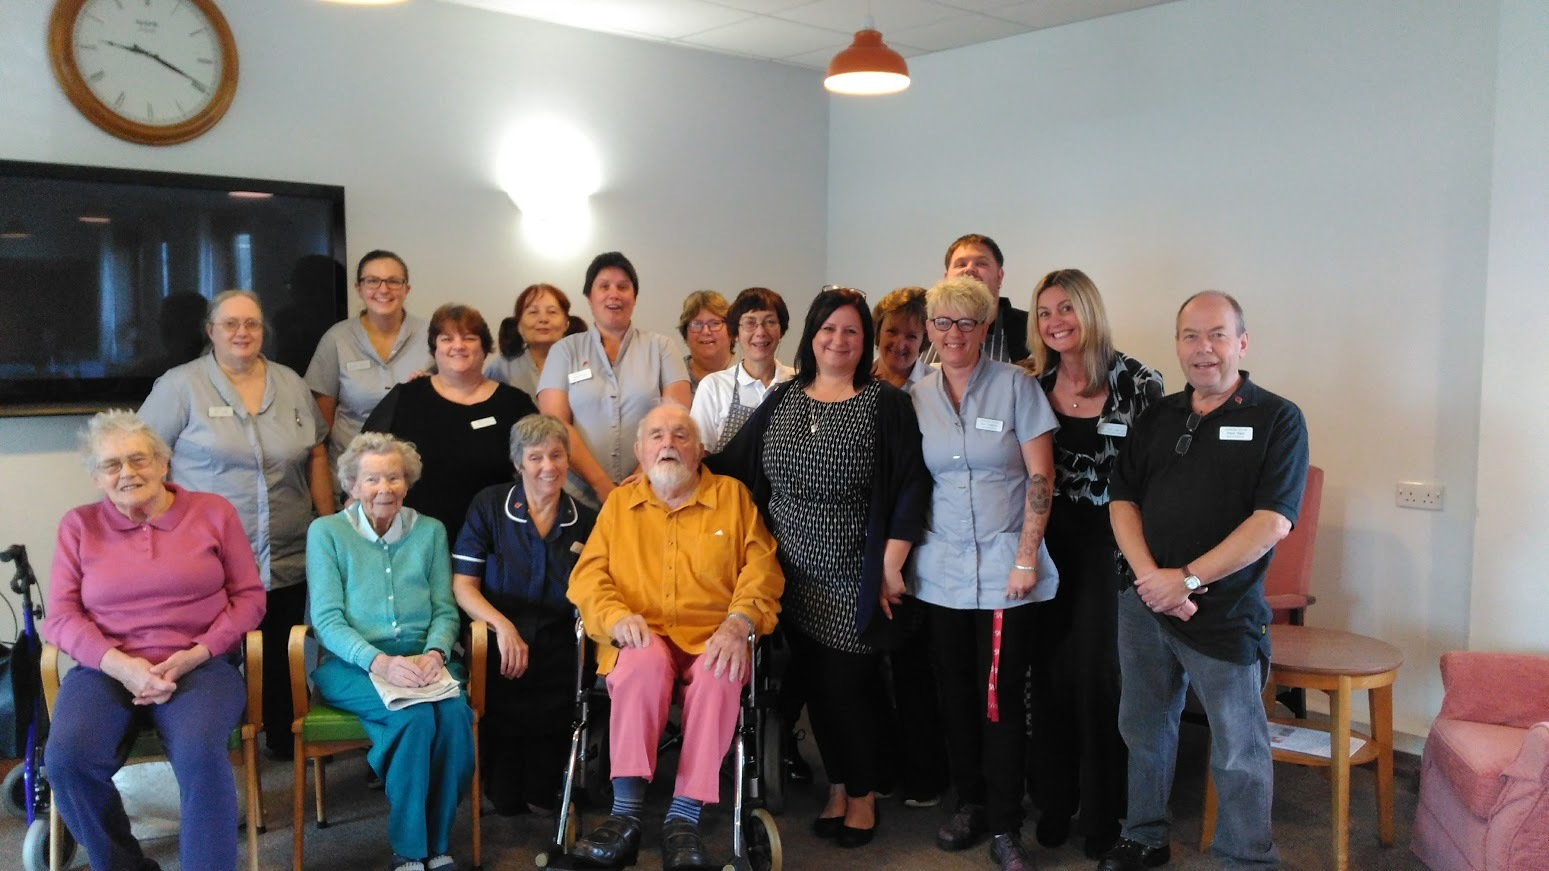 NOMINATED: Staff and residents at Harbour House